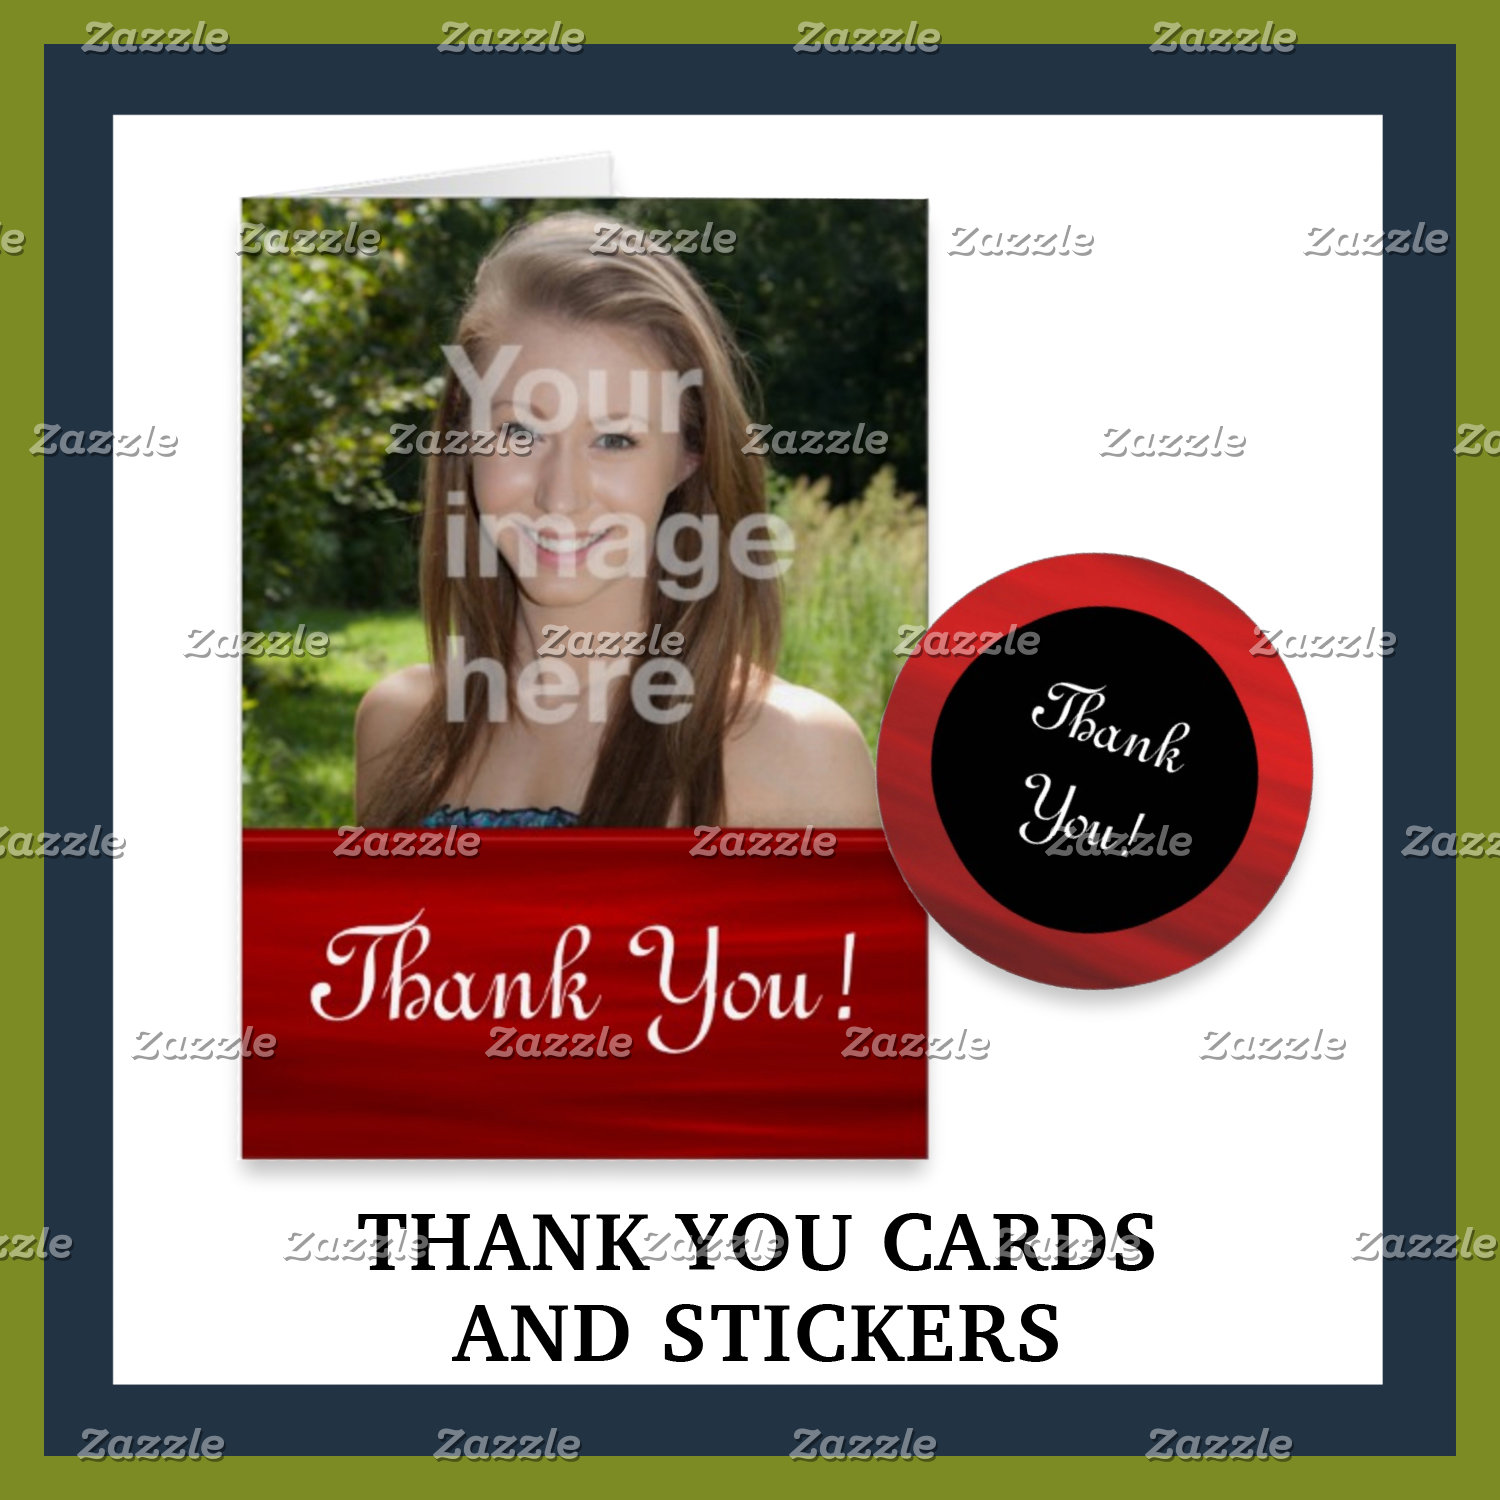 Thank You Cards and Stickers